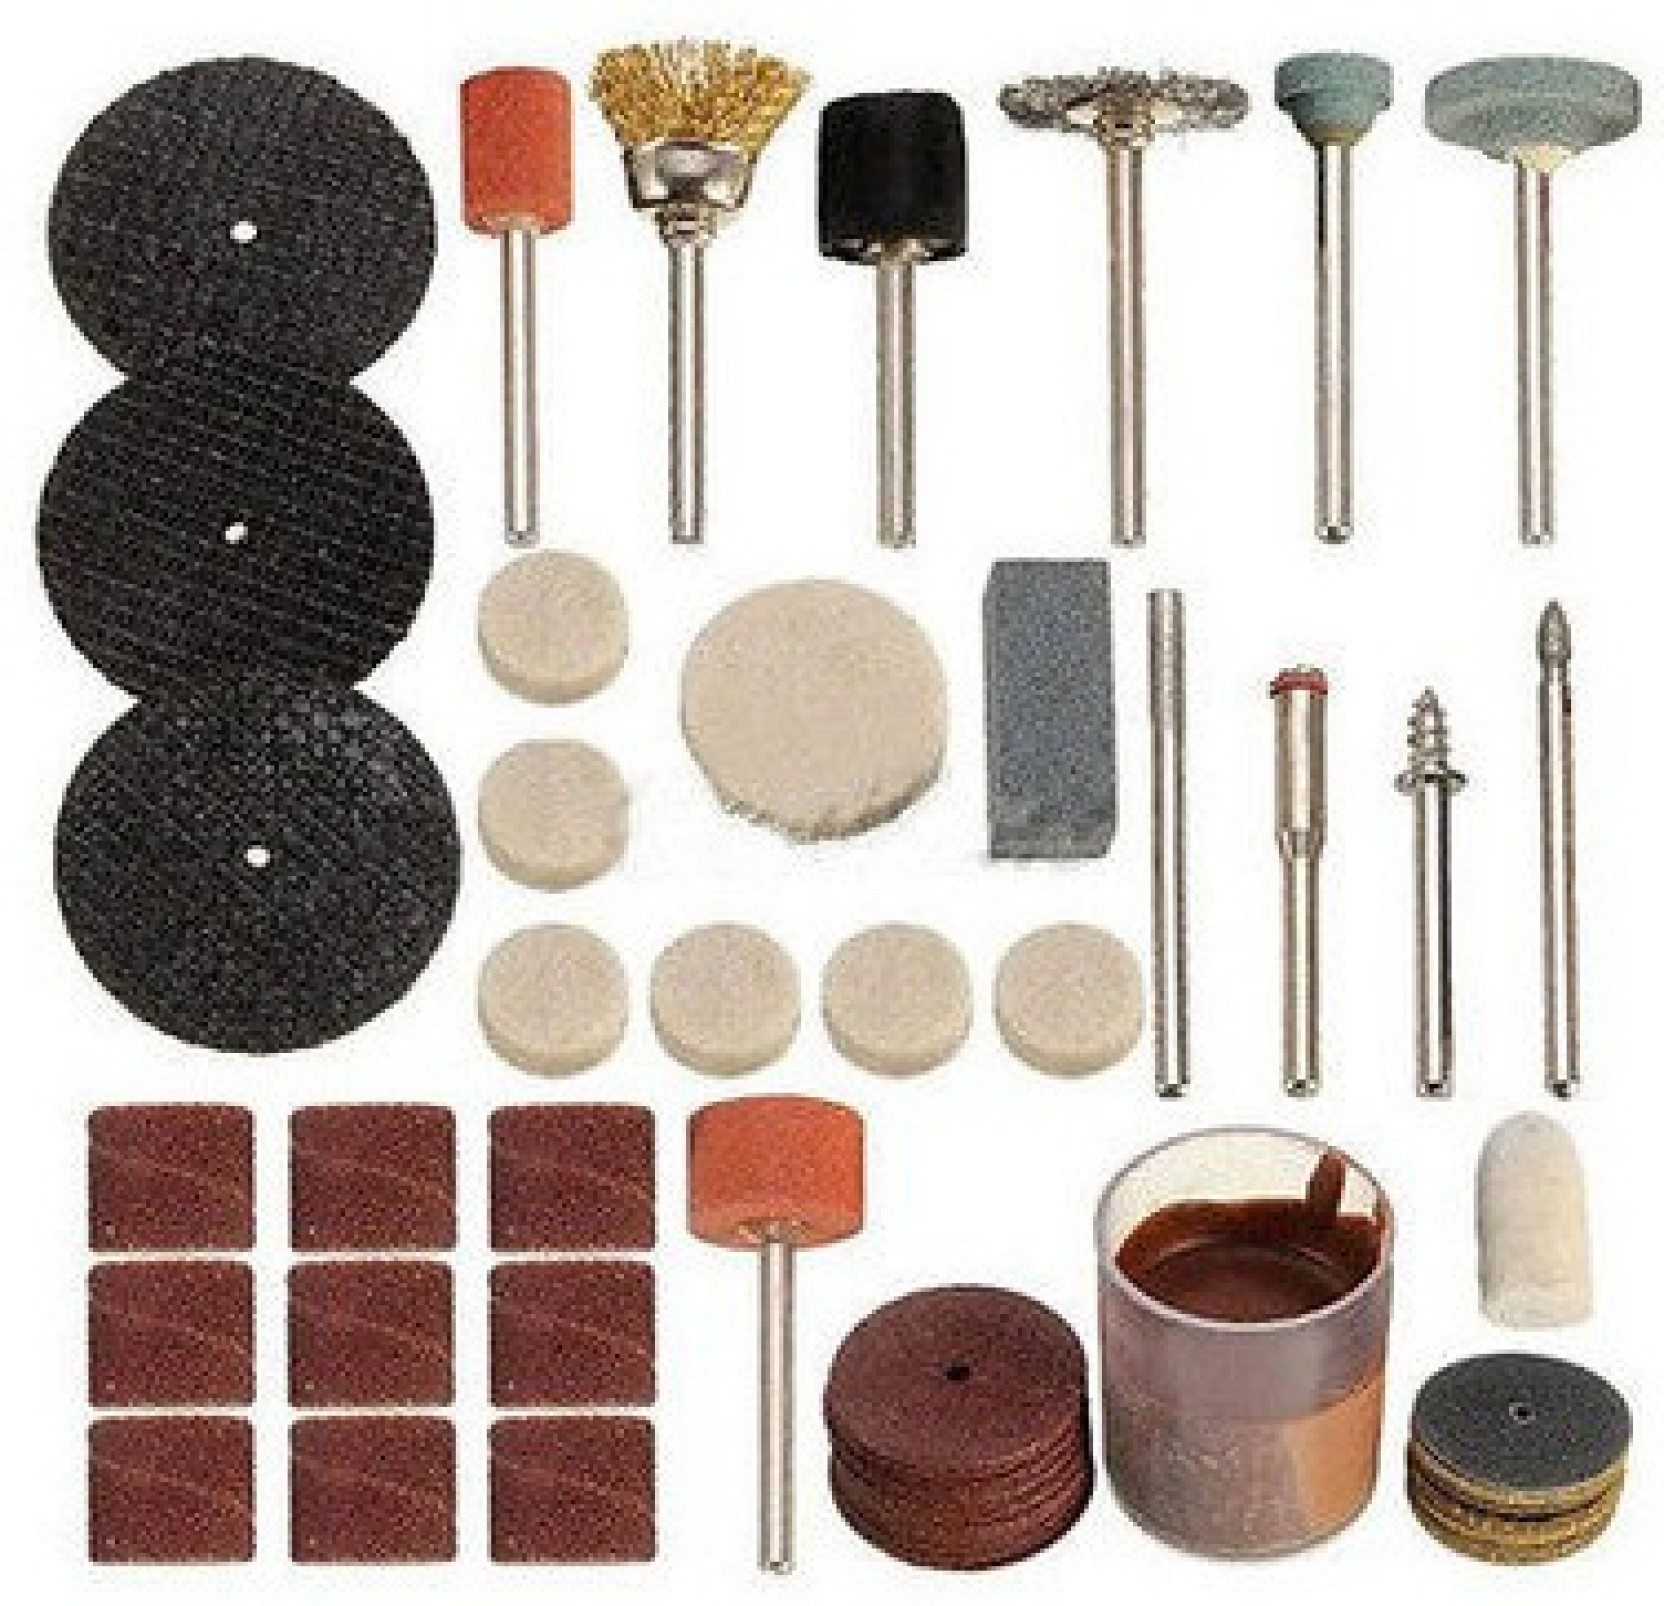 Diy Crafts Rotary Tool Accessory Set Fit Dremel 105 Xgrinding Acessories 150pcs Best Quality Add To Cart